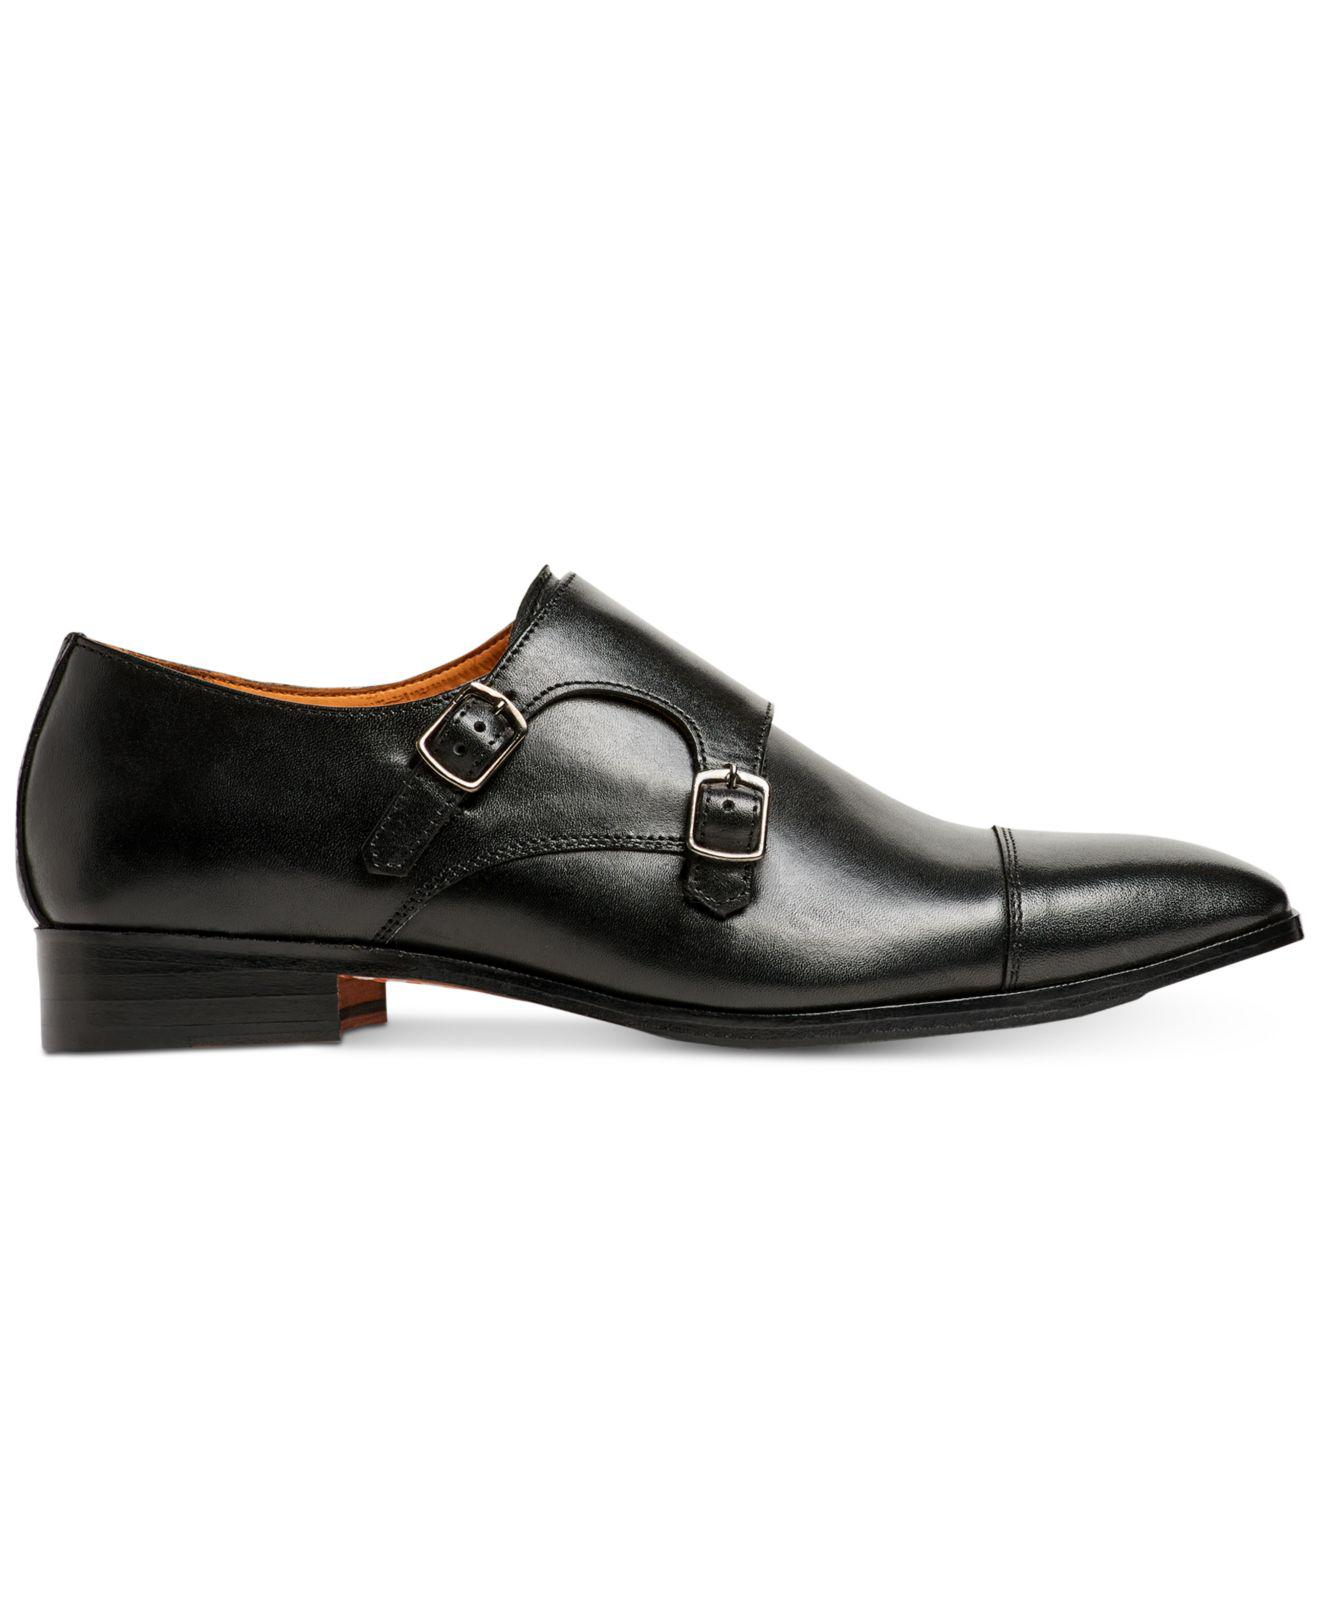 0f6ed7c891a Lyst - Carlos By Carlos Santana Passion Double Monk-strap Loafers in Black  for Men